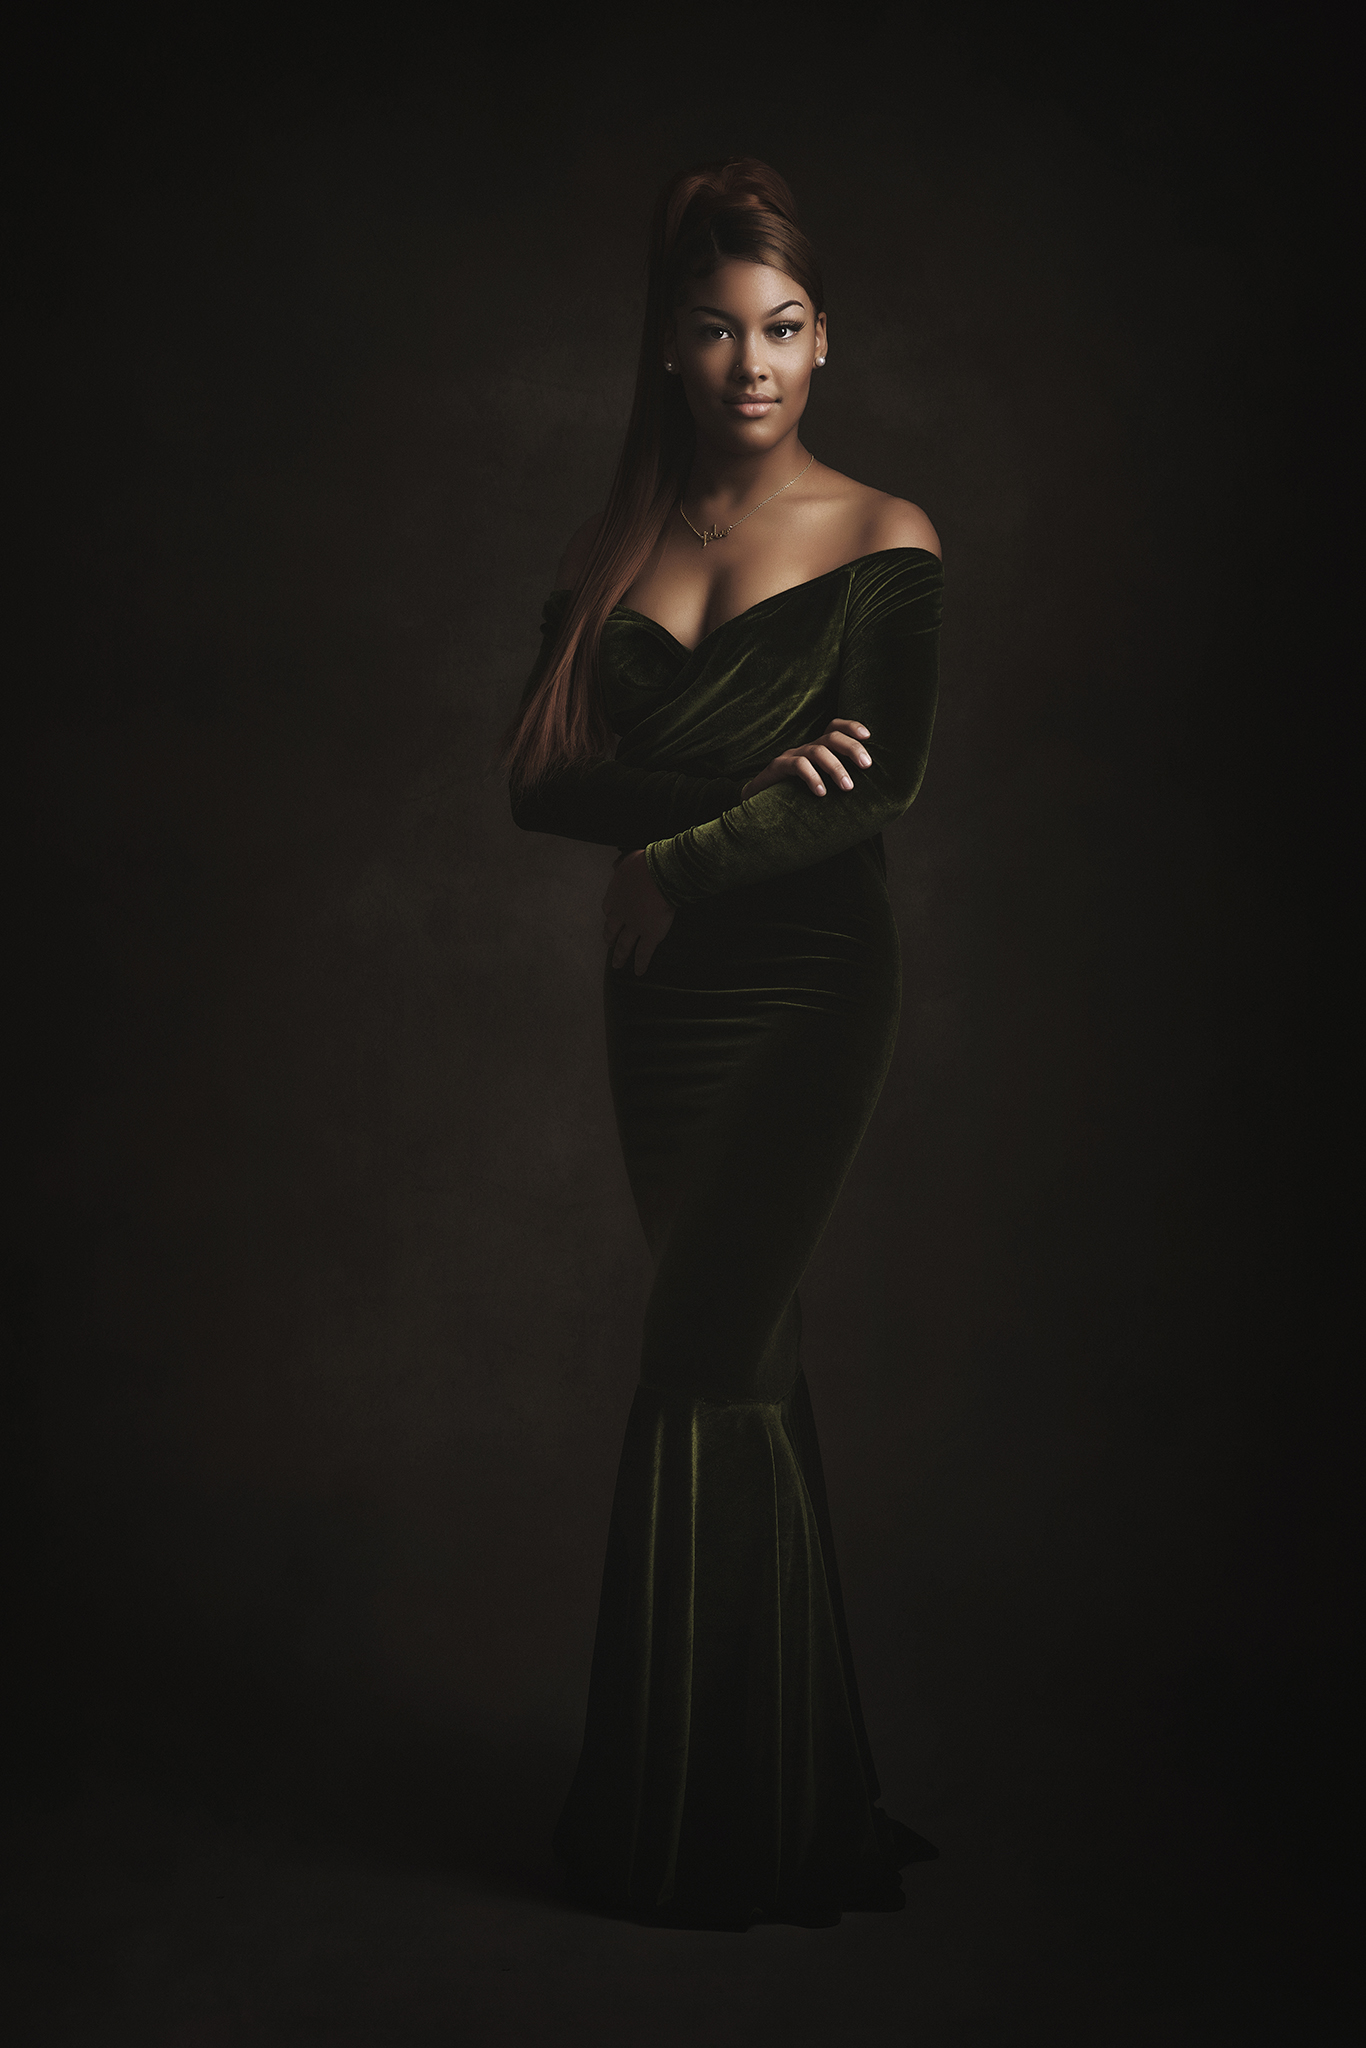 beautiful black model in evening dress in studio shoot by Portrait photographer Preston